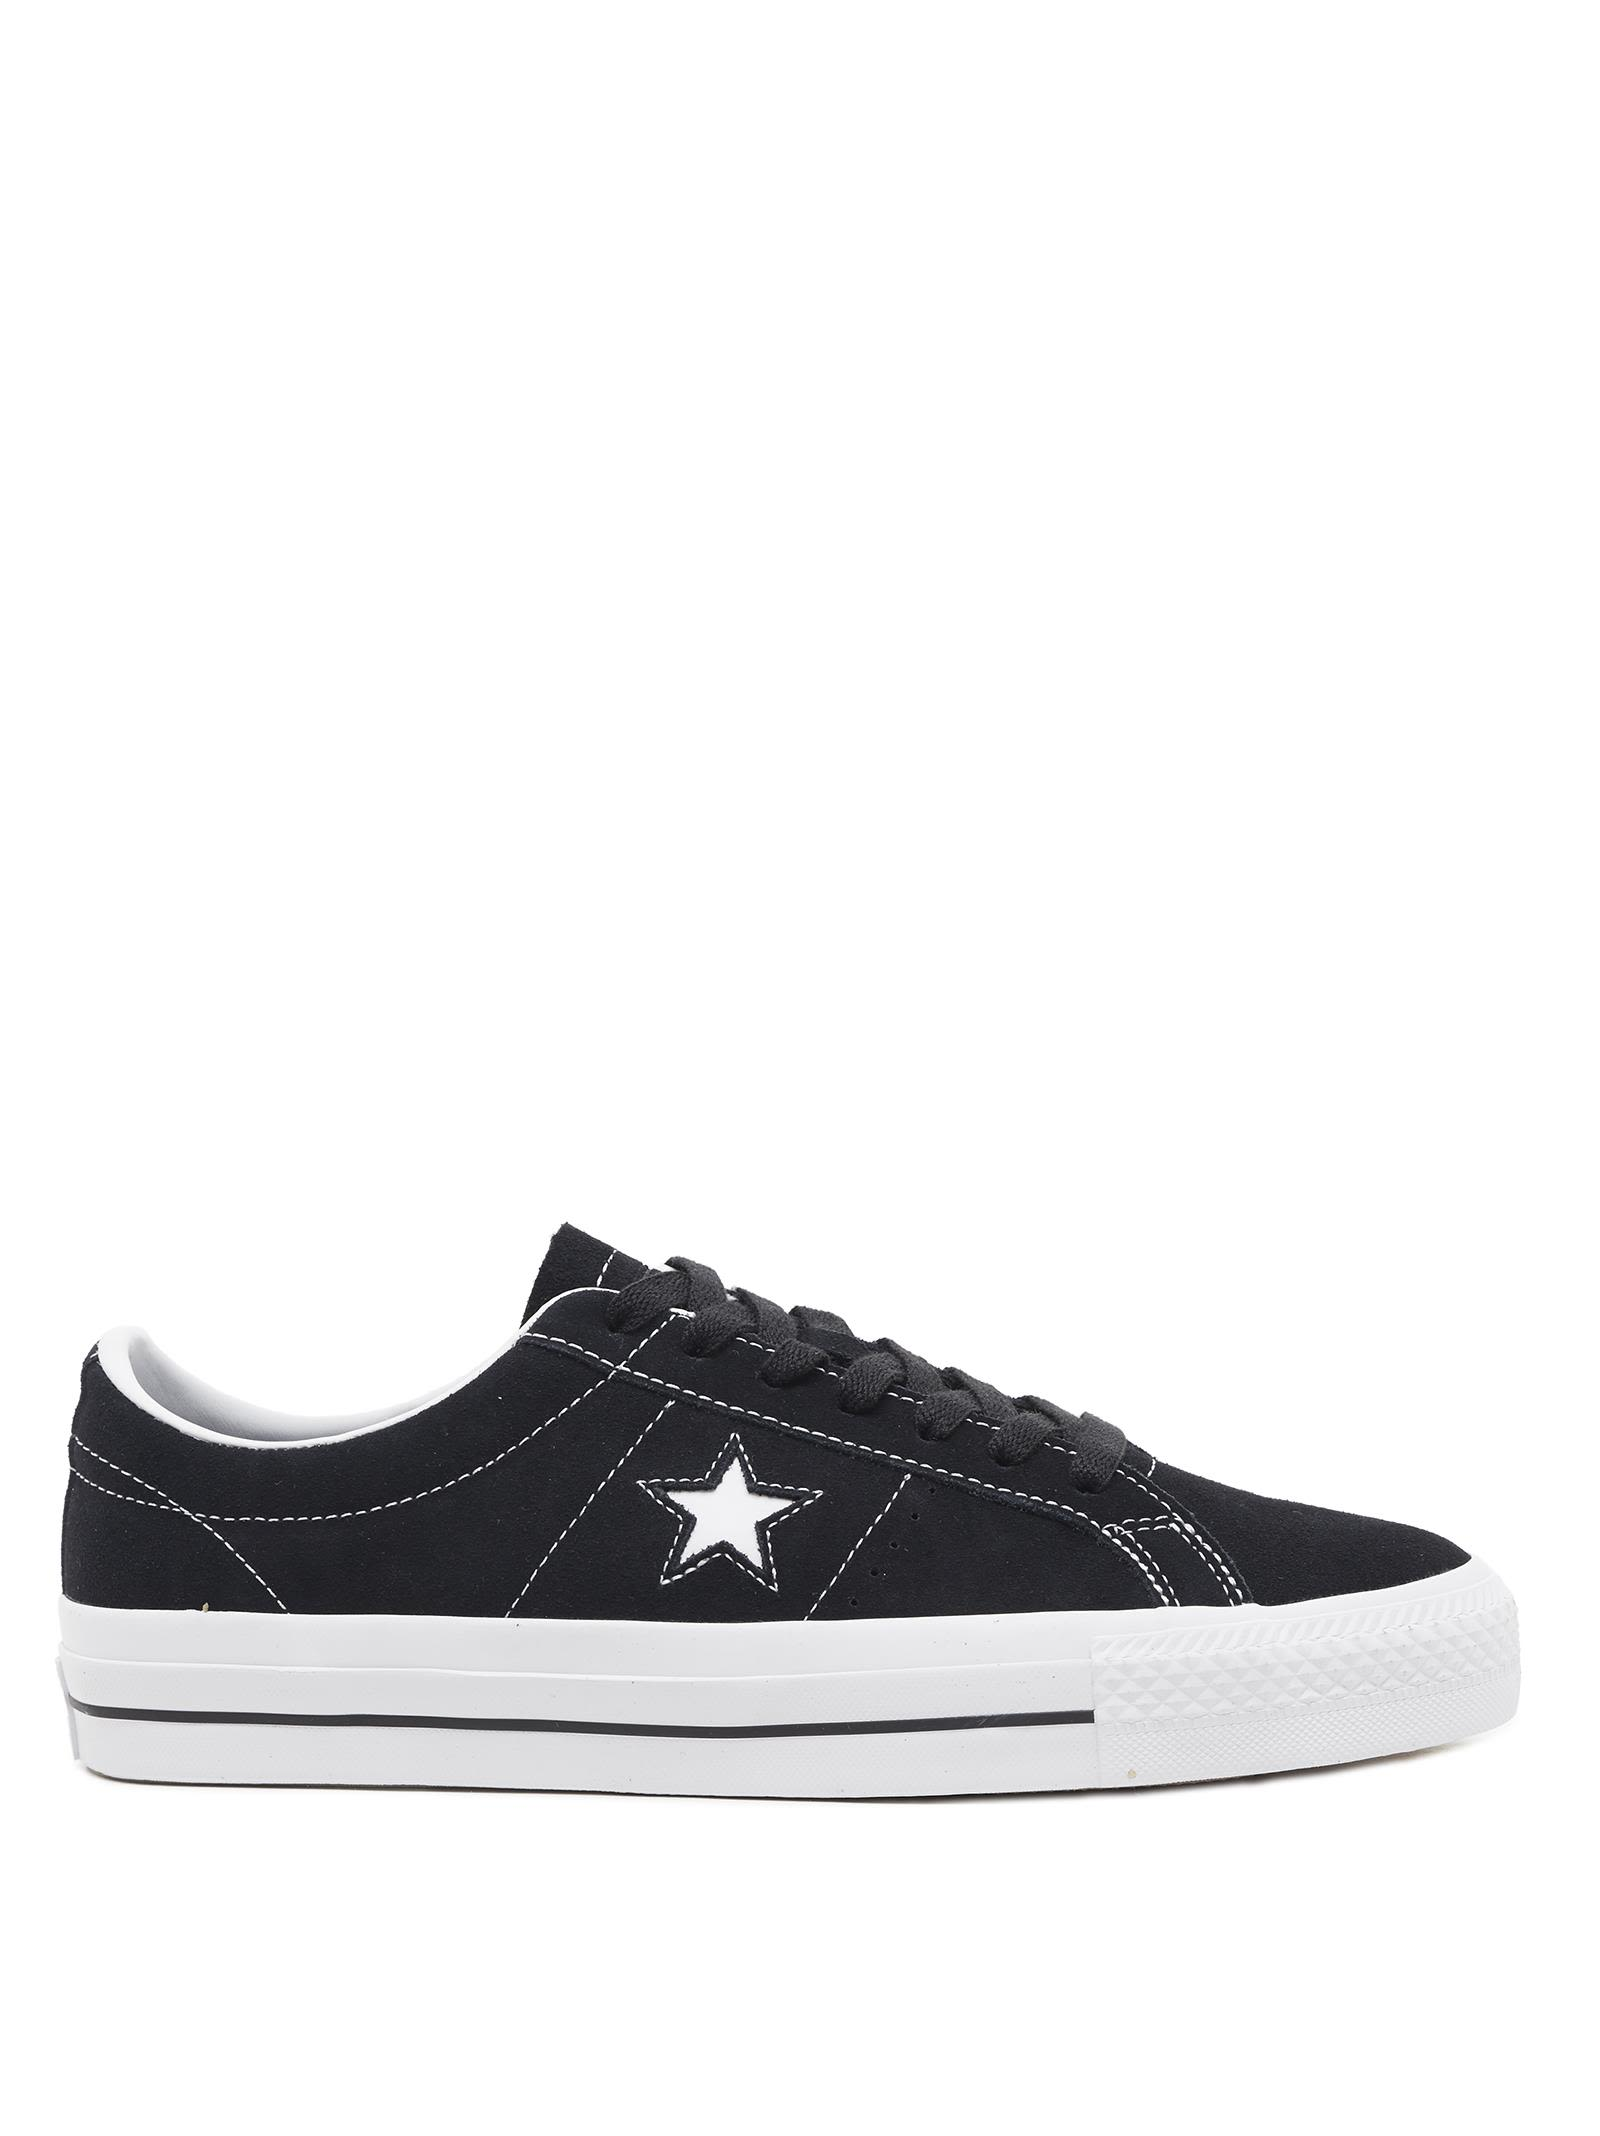 Converse One Star Pro Shoes